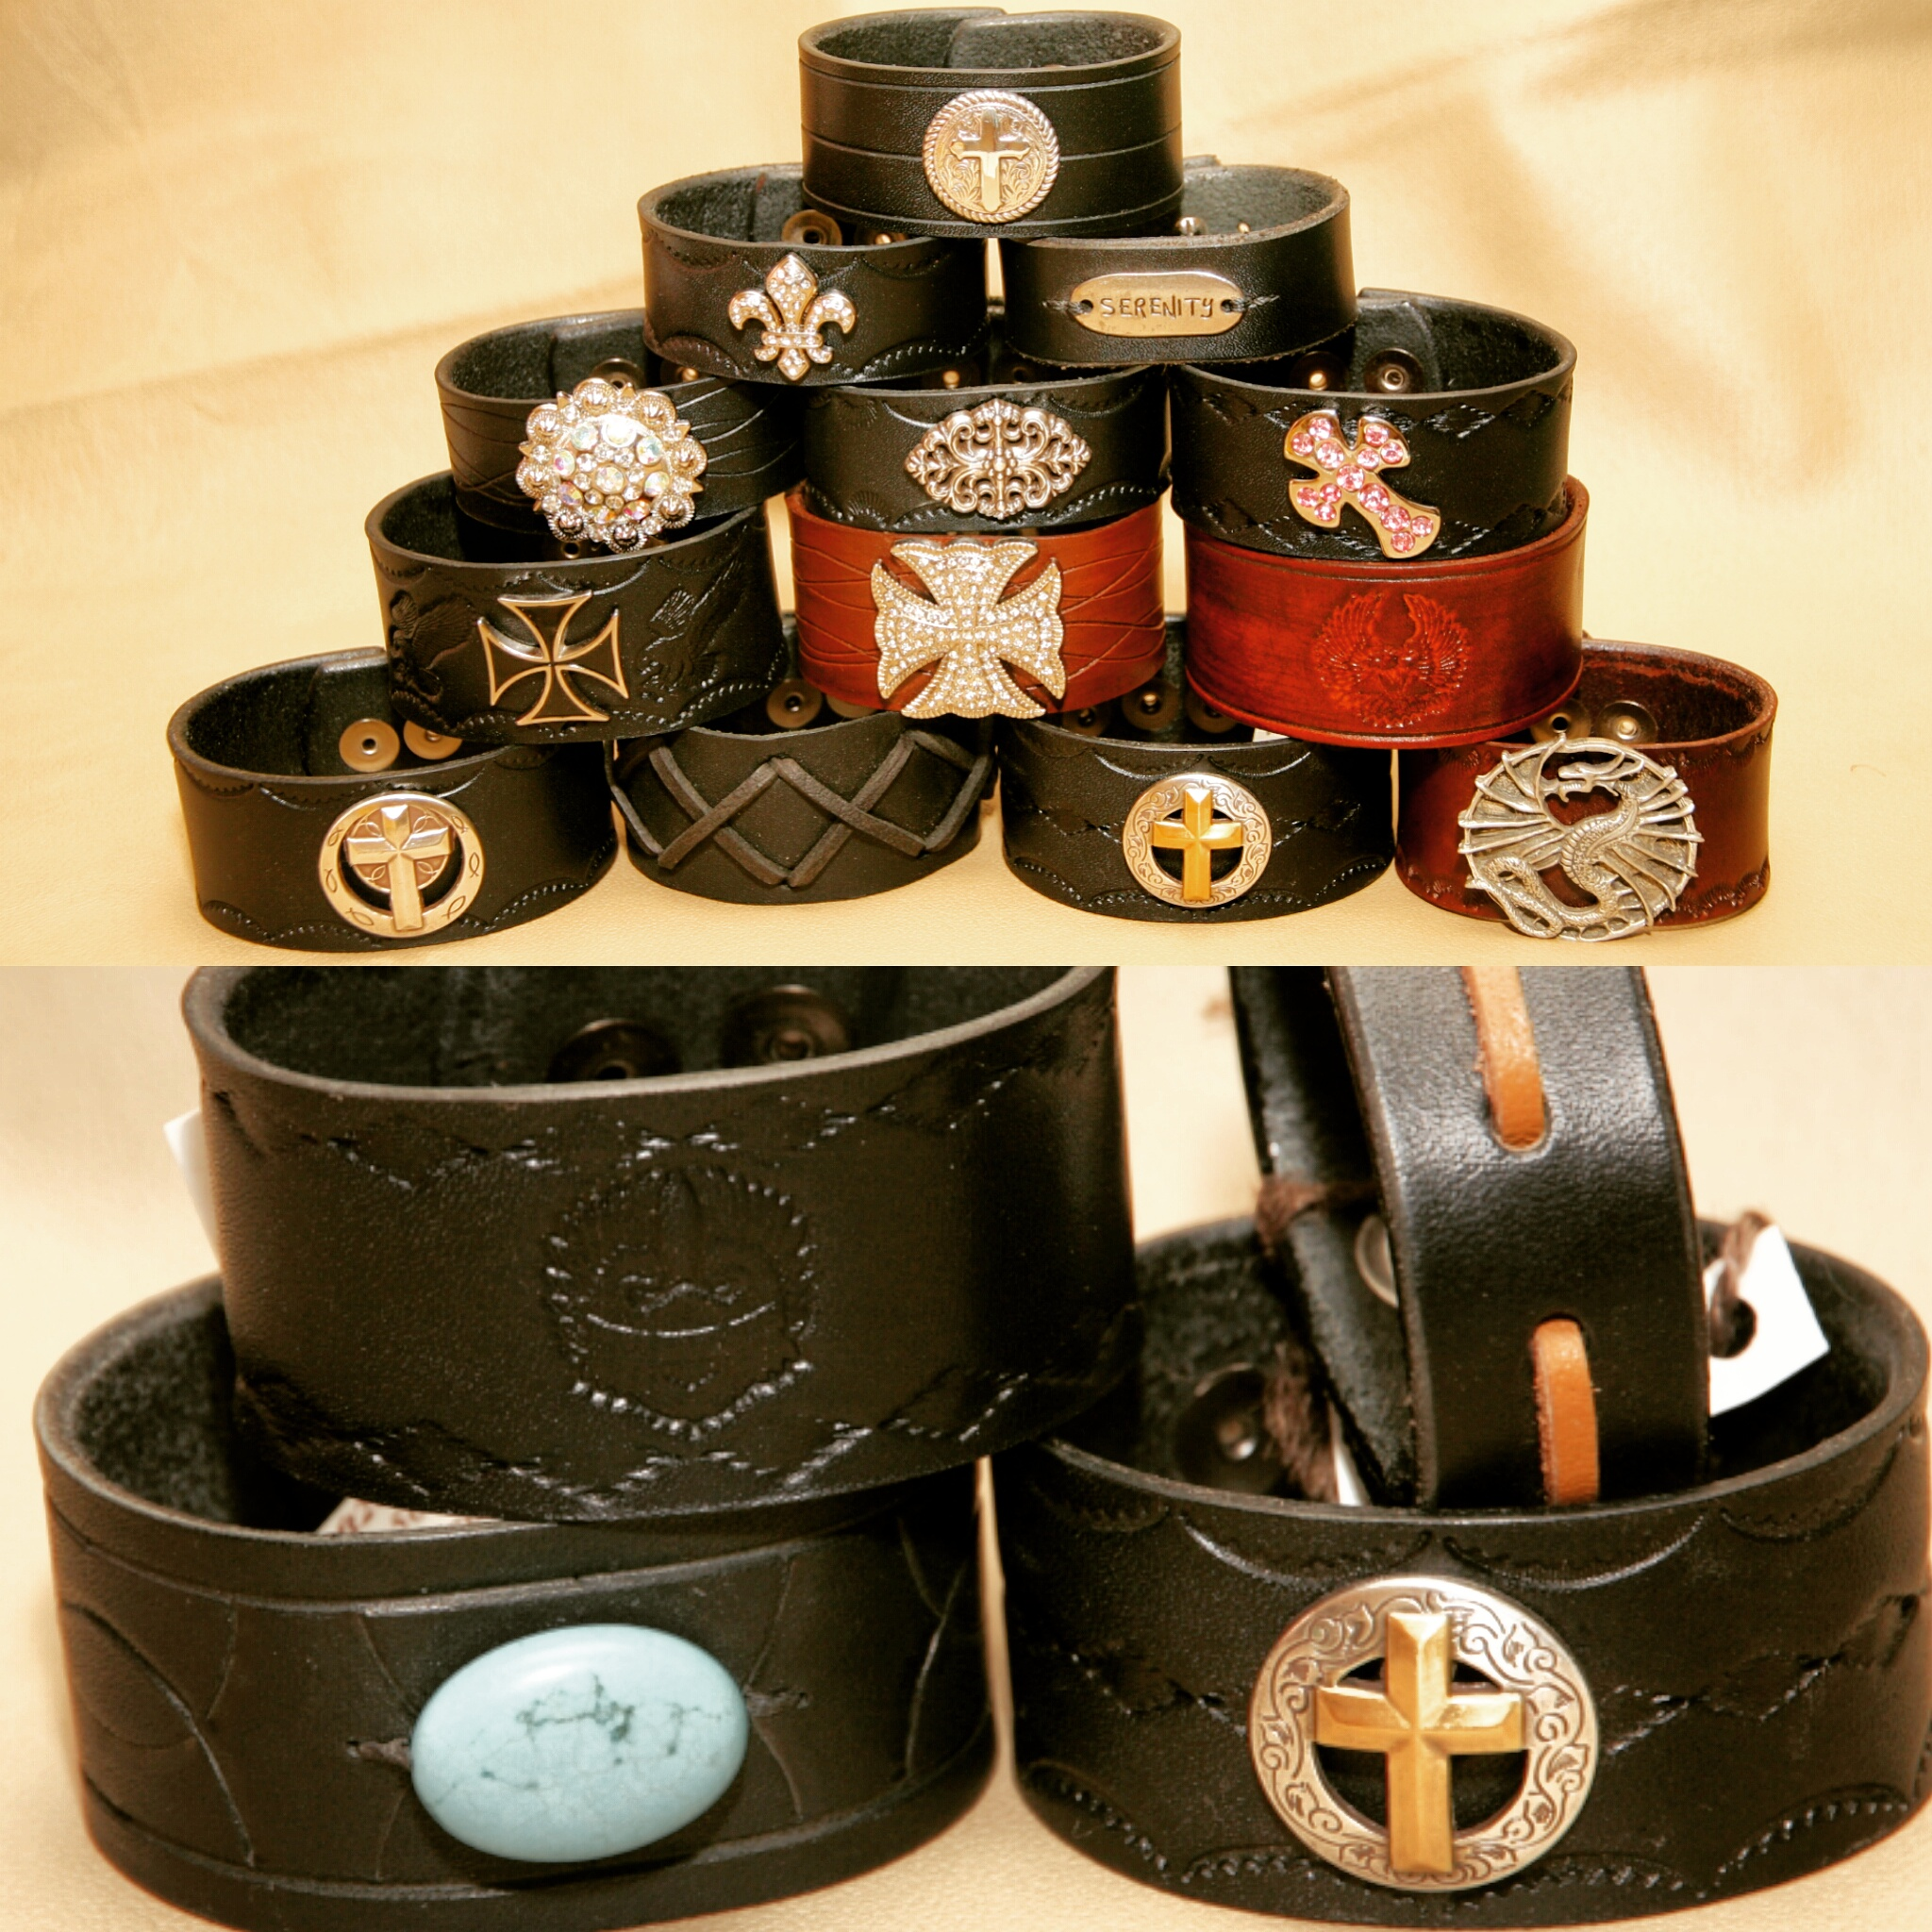 Custom Leather Cuff Bracelets